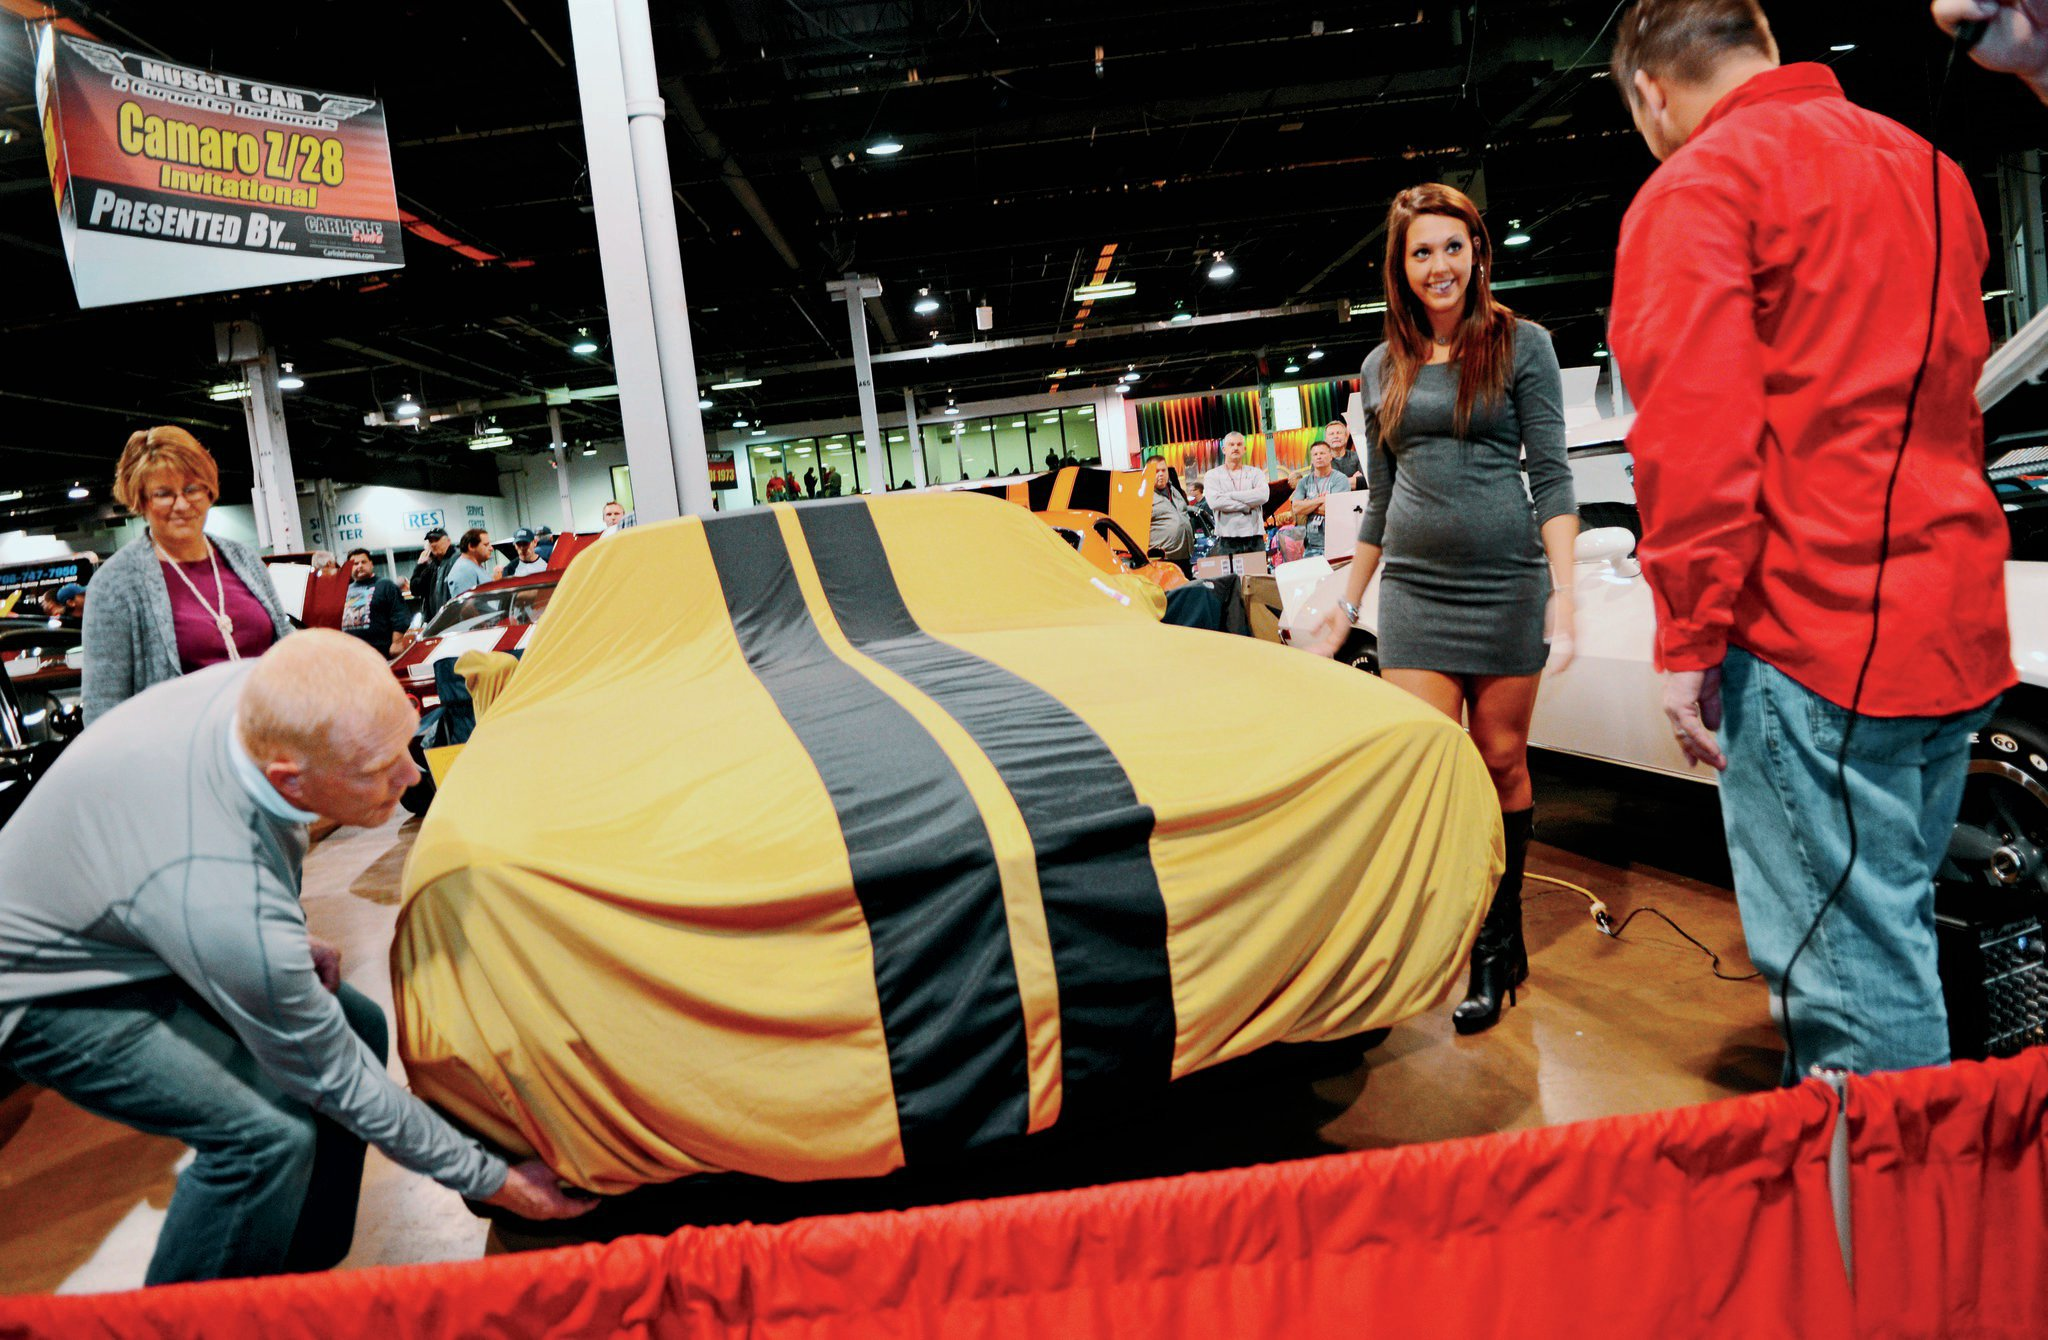 Several high-profile restorations are unveiled during the MCACN show, with a dramatic lifting of the car cover in front of an appreciative audience. Bernie's Z28 was among those so honored at MCACN 2013.